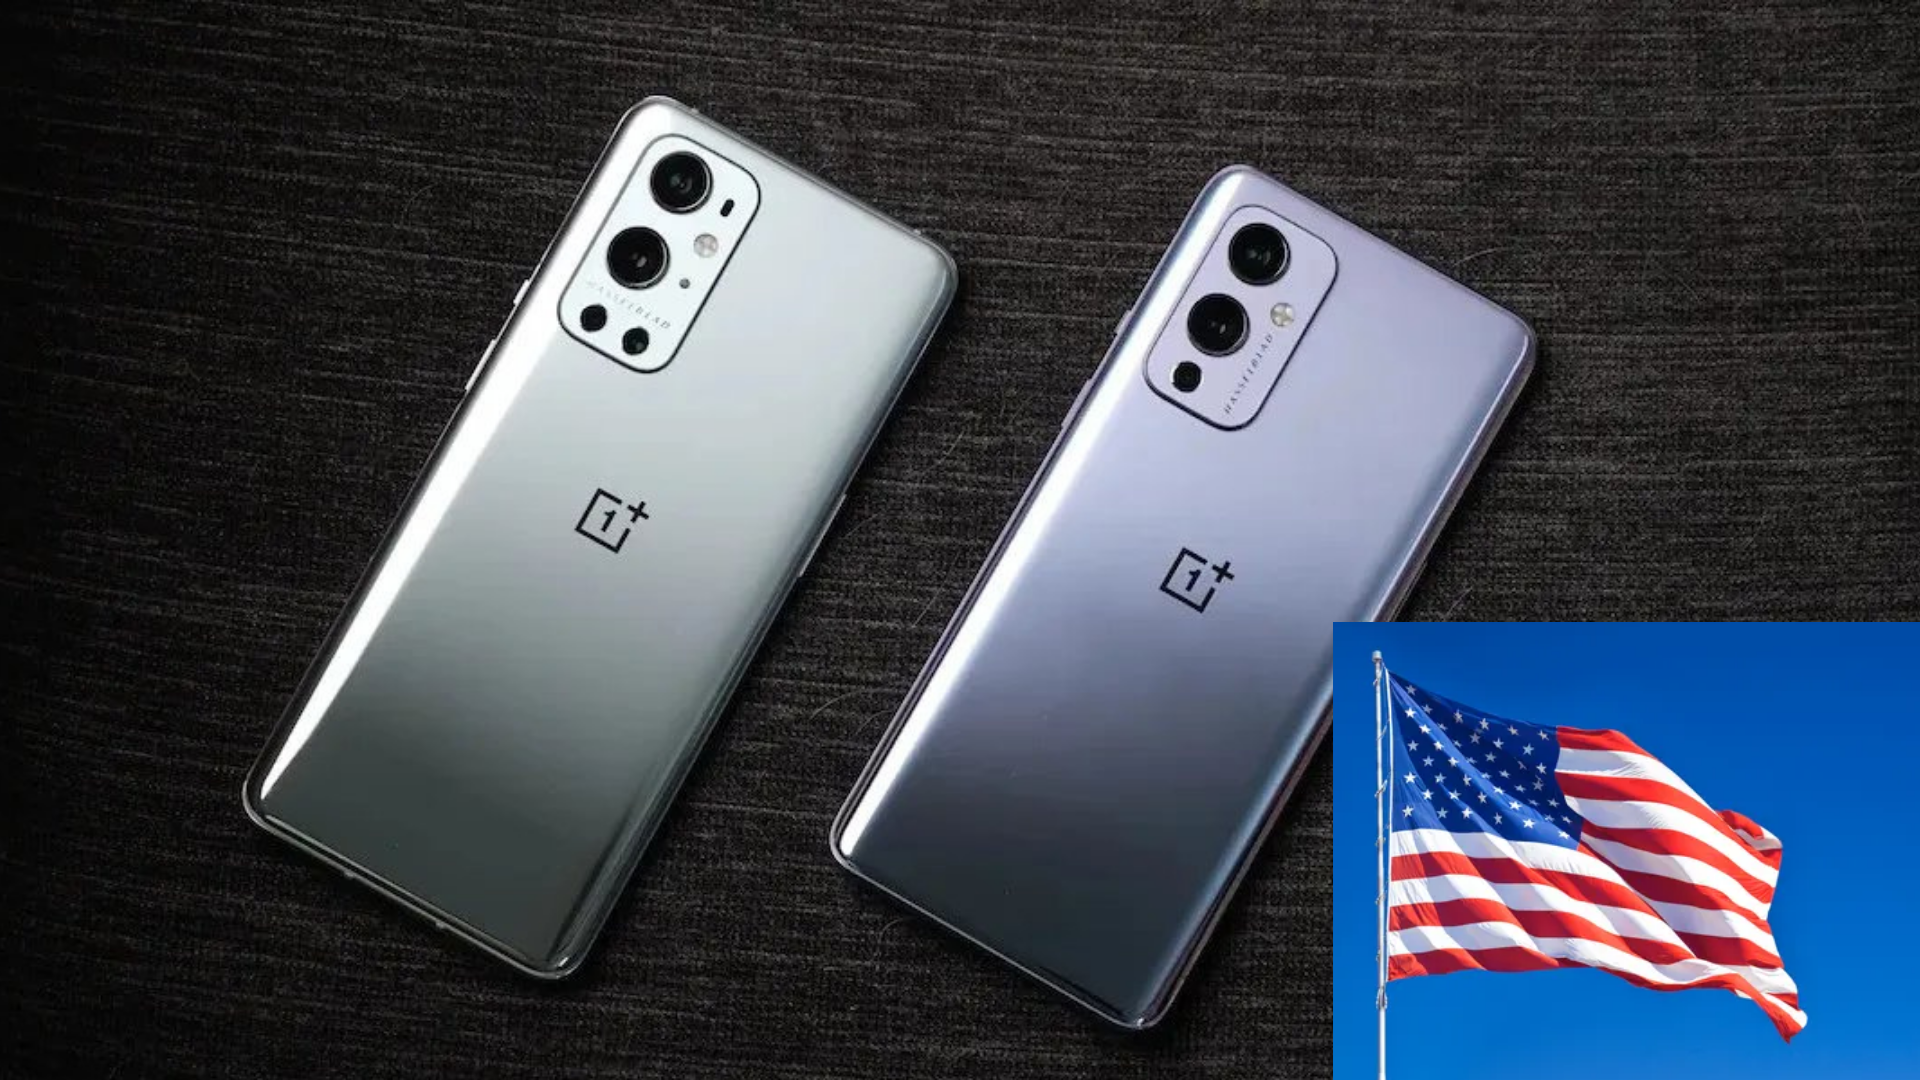 Cheaper OnePlus 9 Pro model won't be available in US markets, here are the reasons